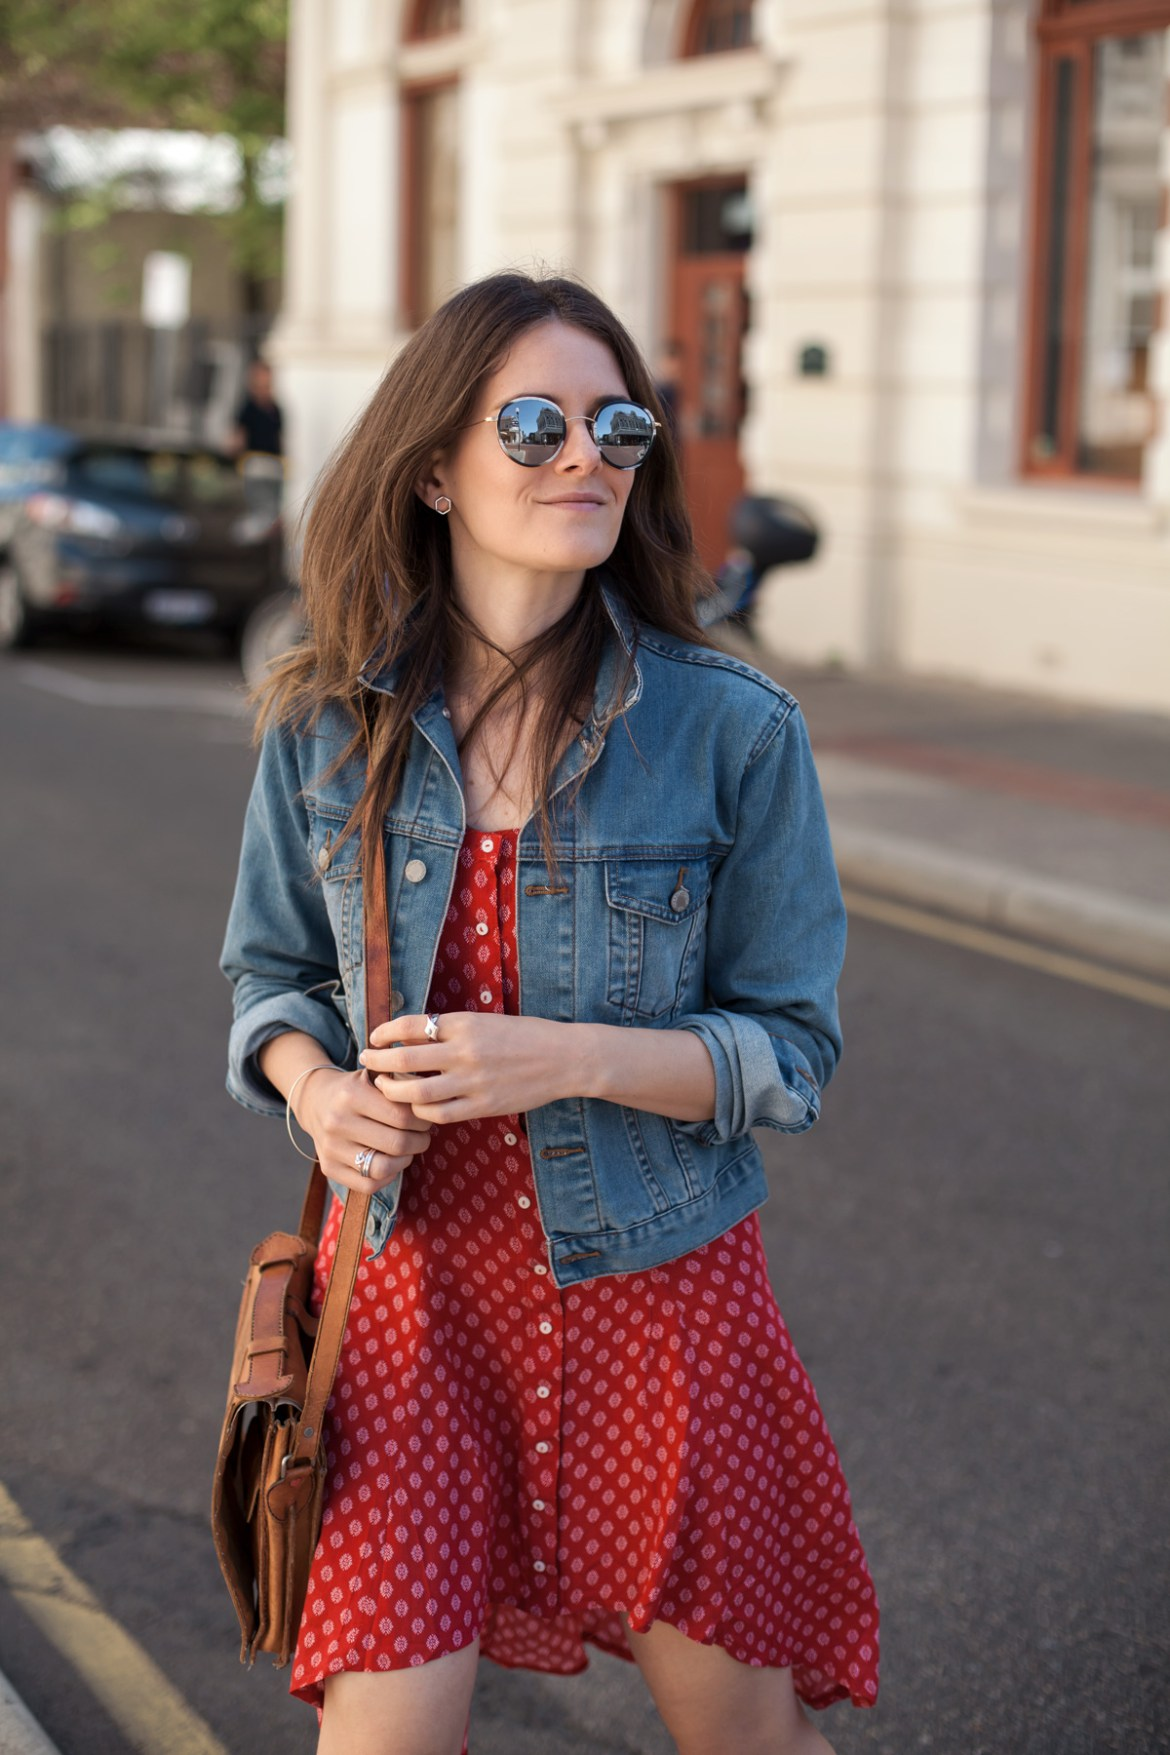 A summer outfit I wore in Perth for lunch with a printed red dress and denim jacket. Shared on my blog post about driving traffic to your website with Pinterest